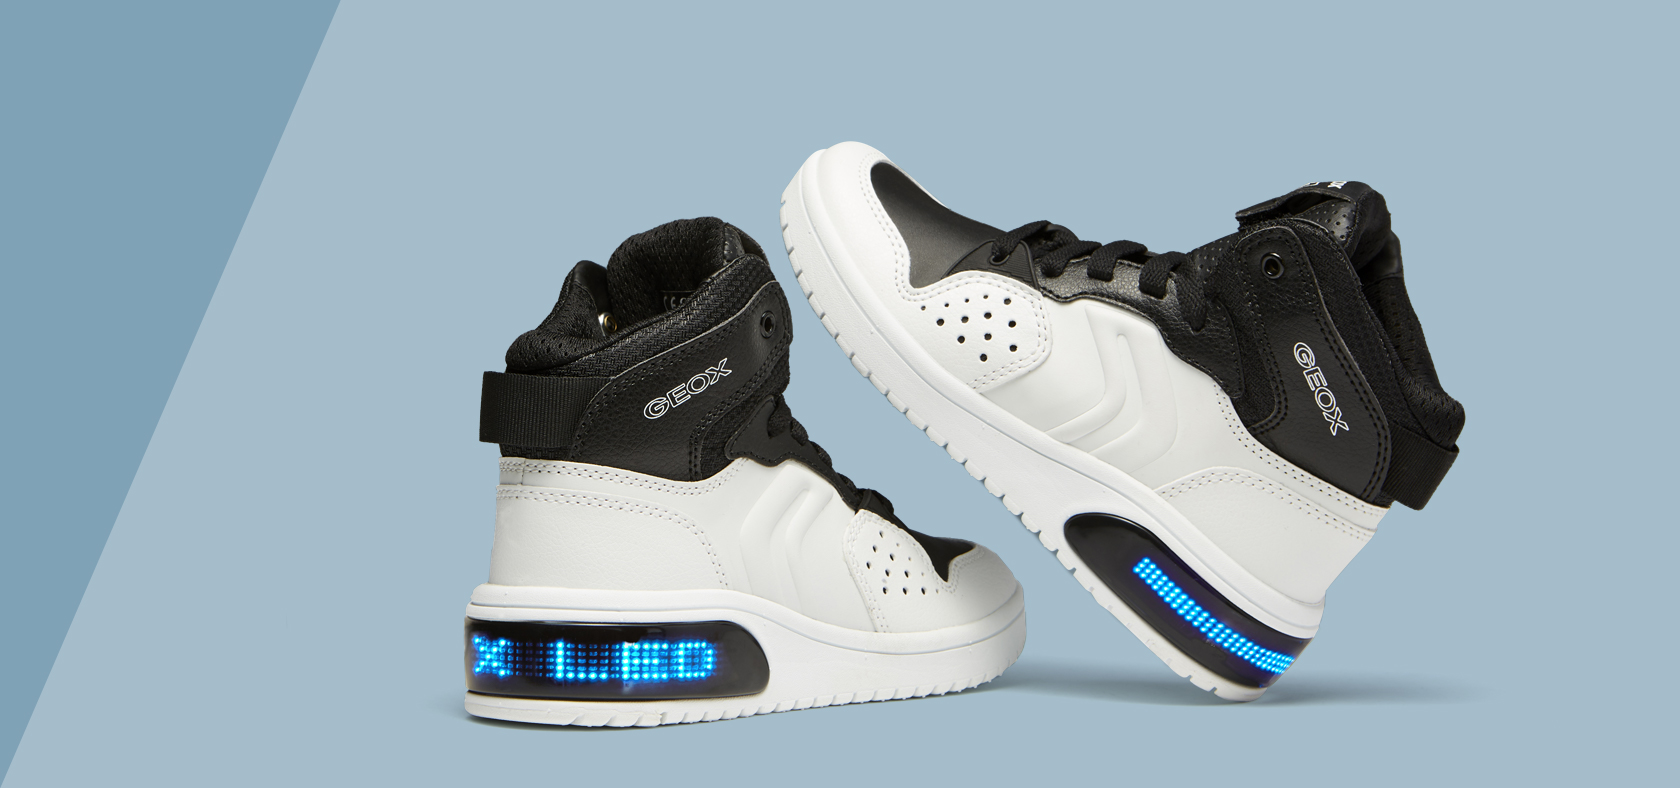 promo code 95d8d 4c70a Light Up Shoes and Sneakers for Boys | Geox